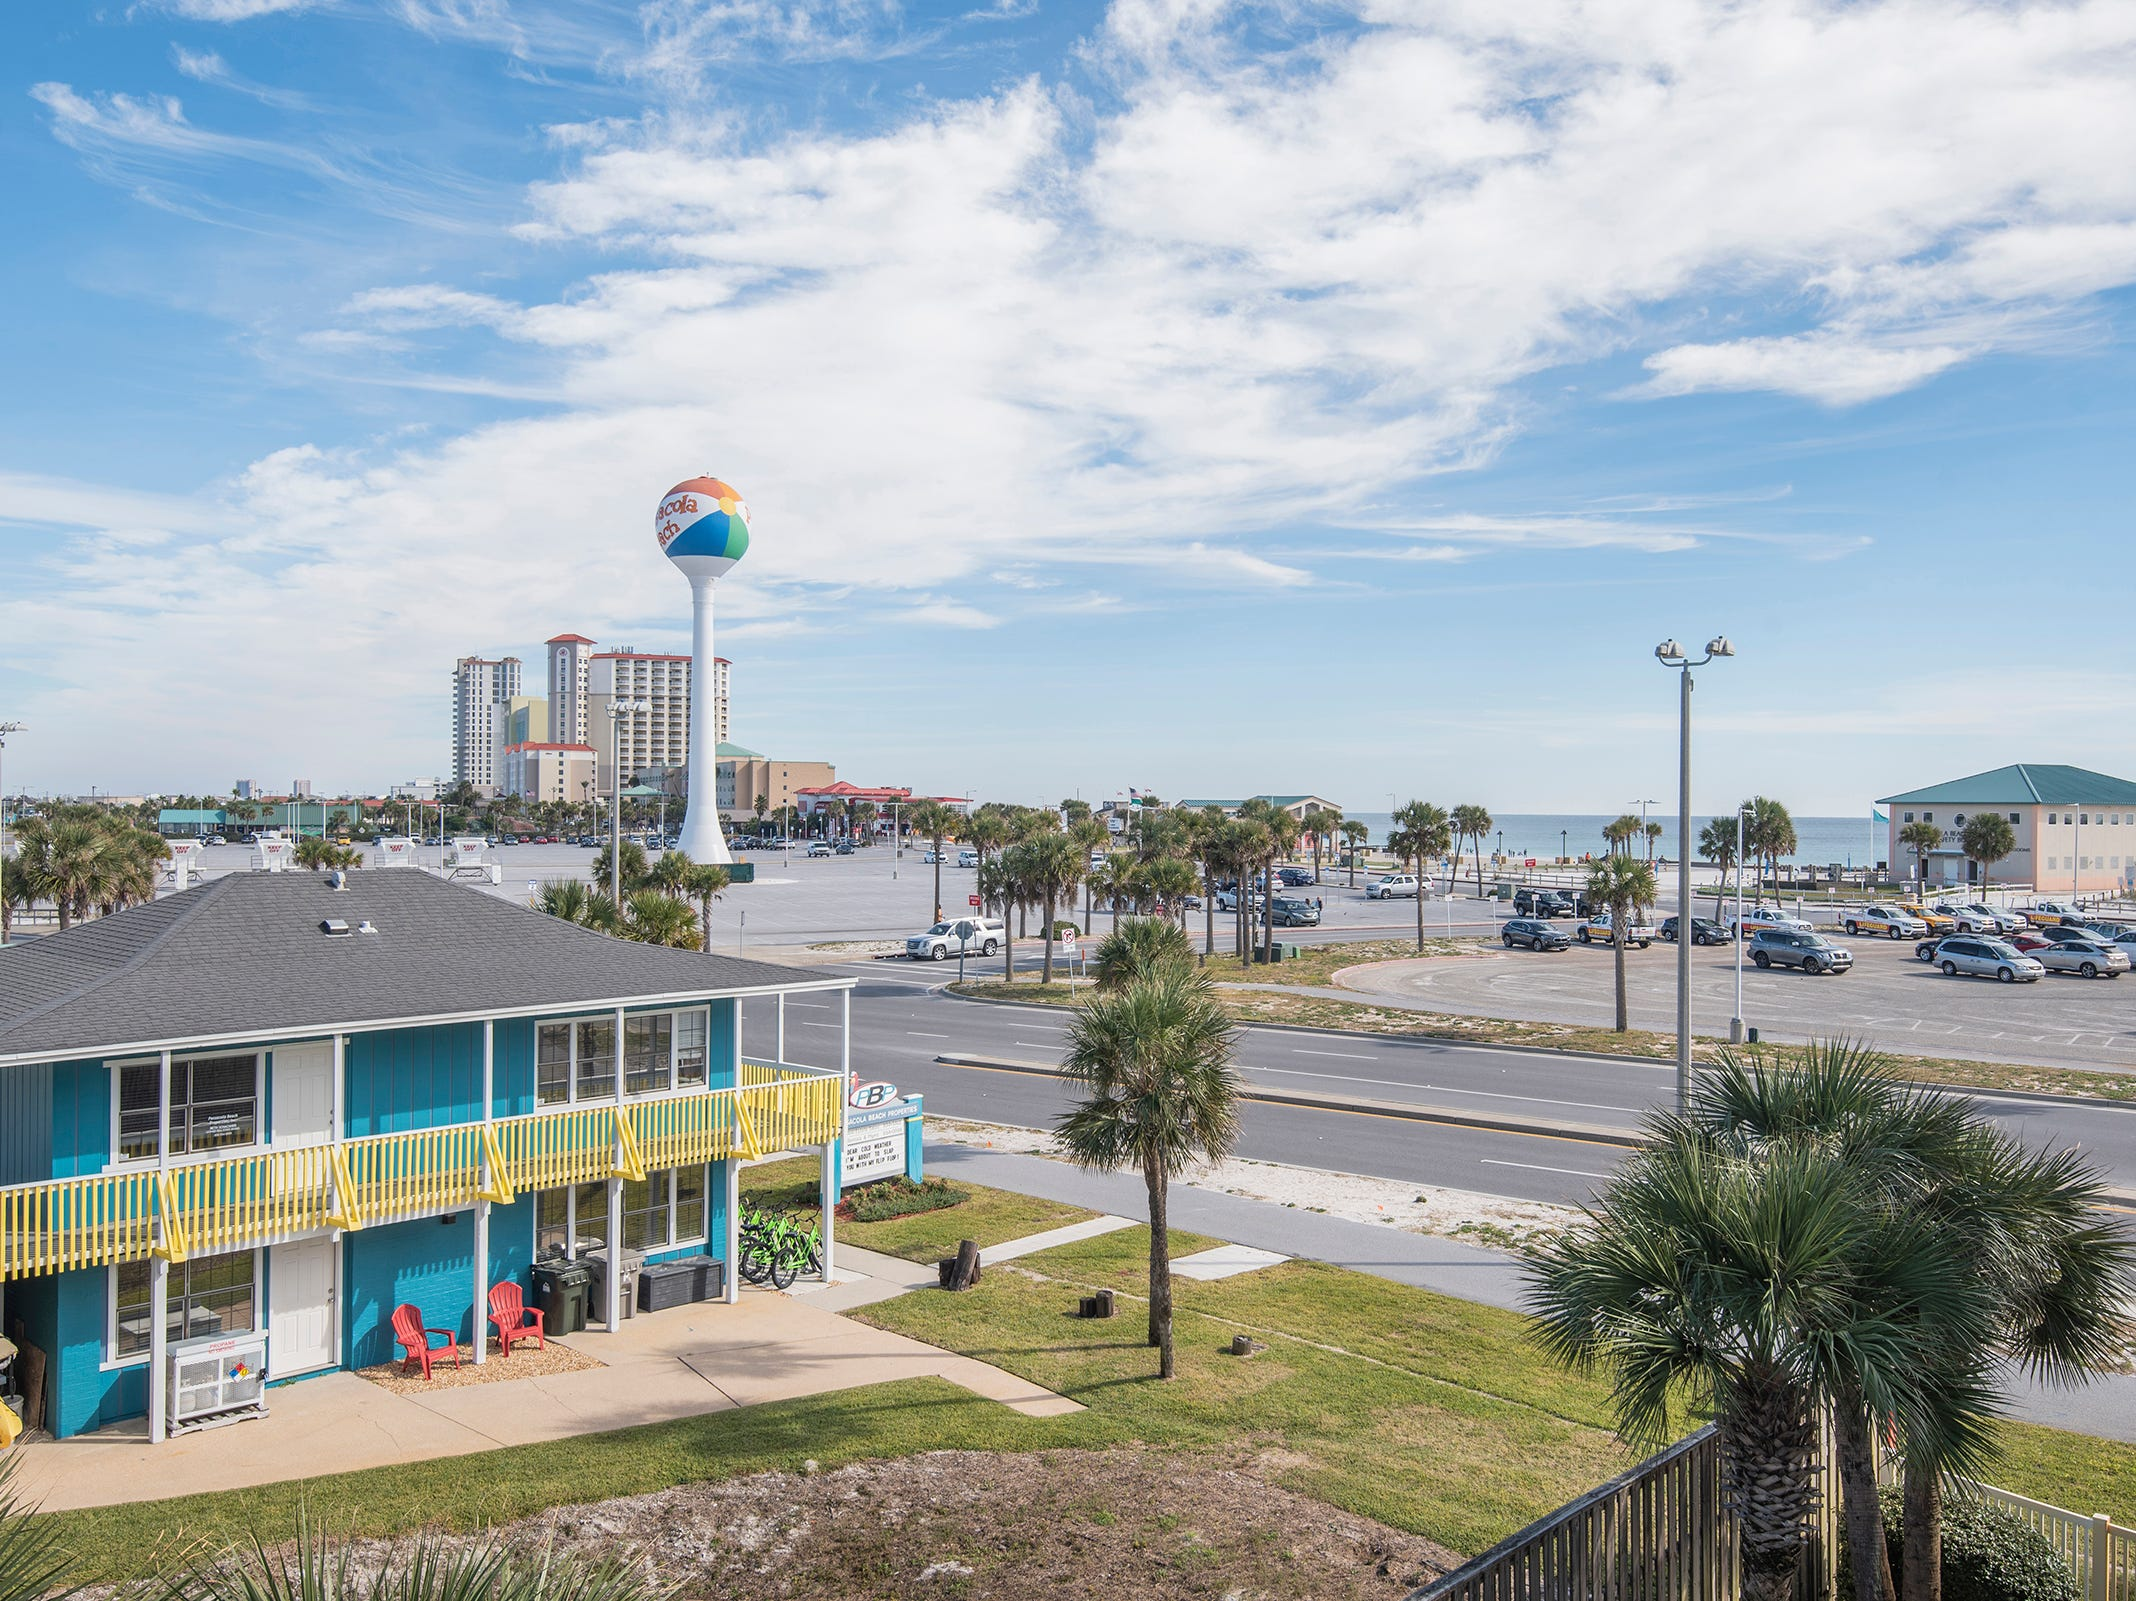 1 La Caribe Dr.Enjoy views of Pensacola Beach and a front row seat for Blue Angels air shows.